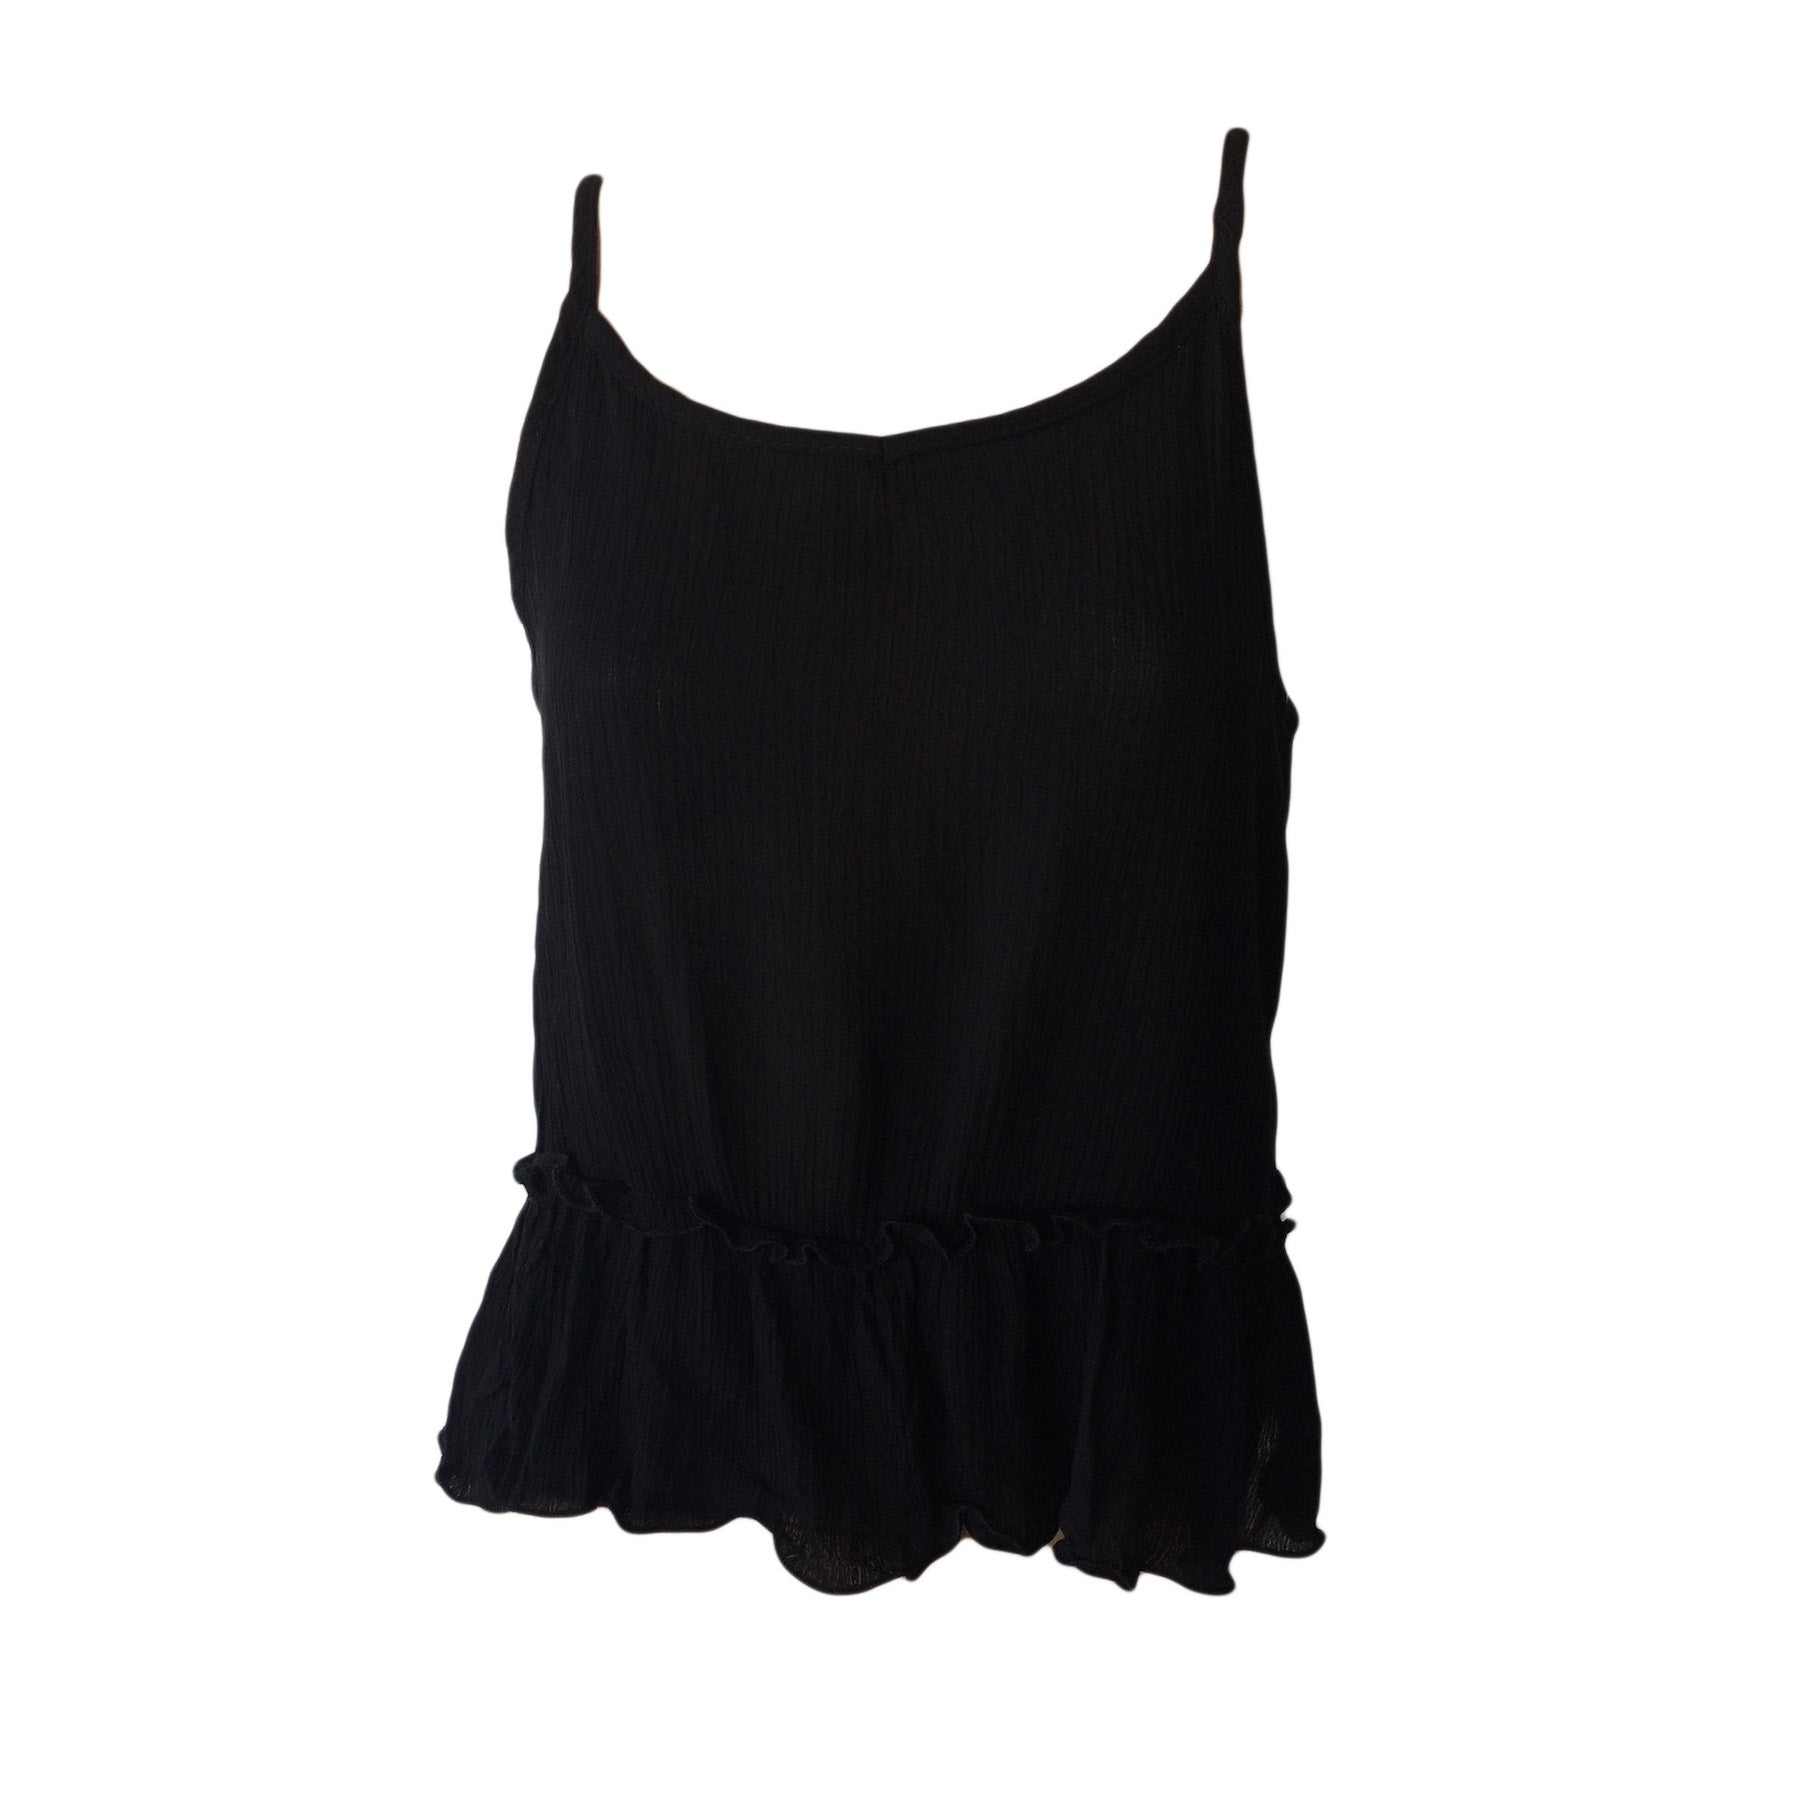 Black Swing Tank, Black Cami top, Black swing top, Teen Fashion, Pinc Premium